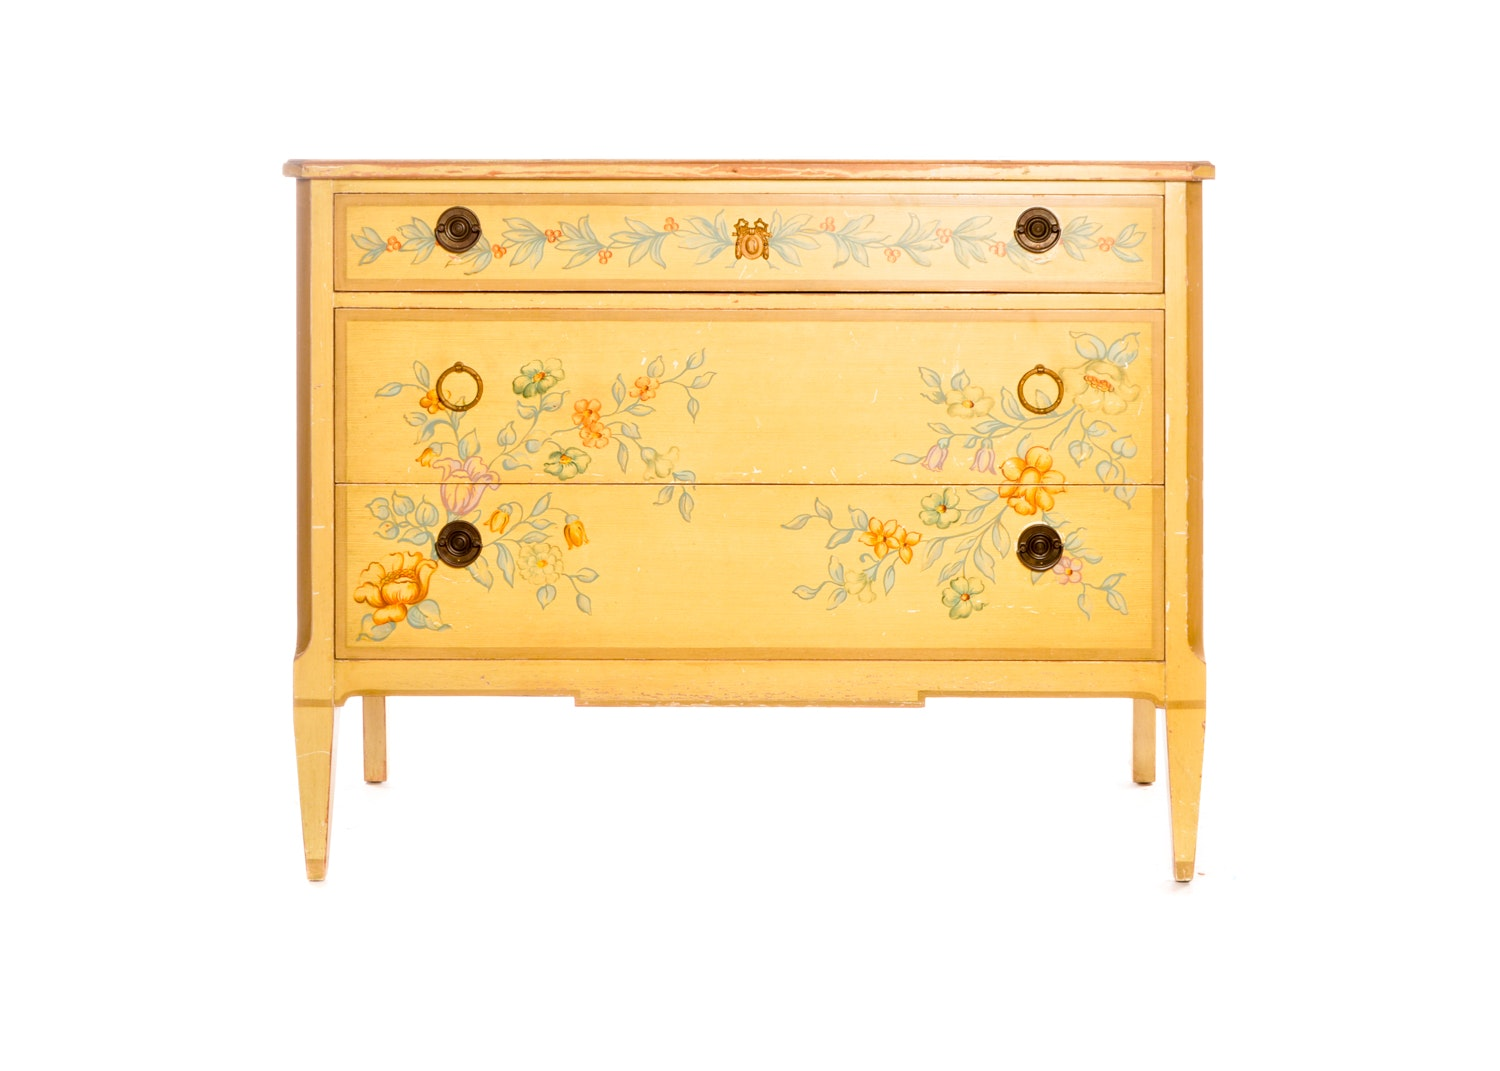 Floral Themed Painted Wooden Chest of Drawers, Mid-20th Century